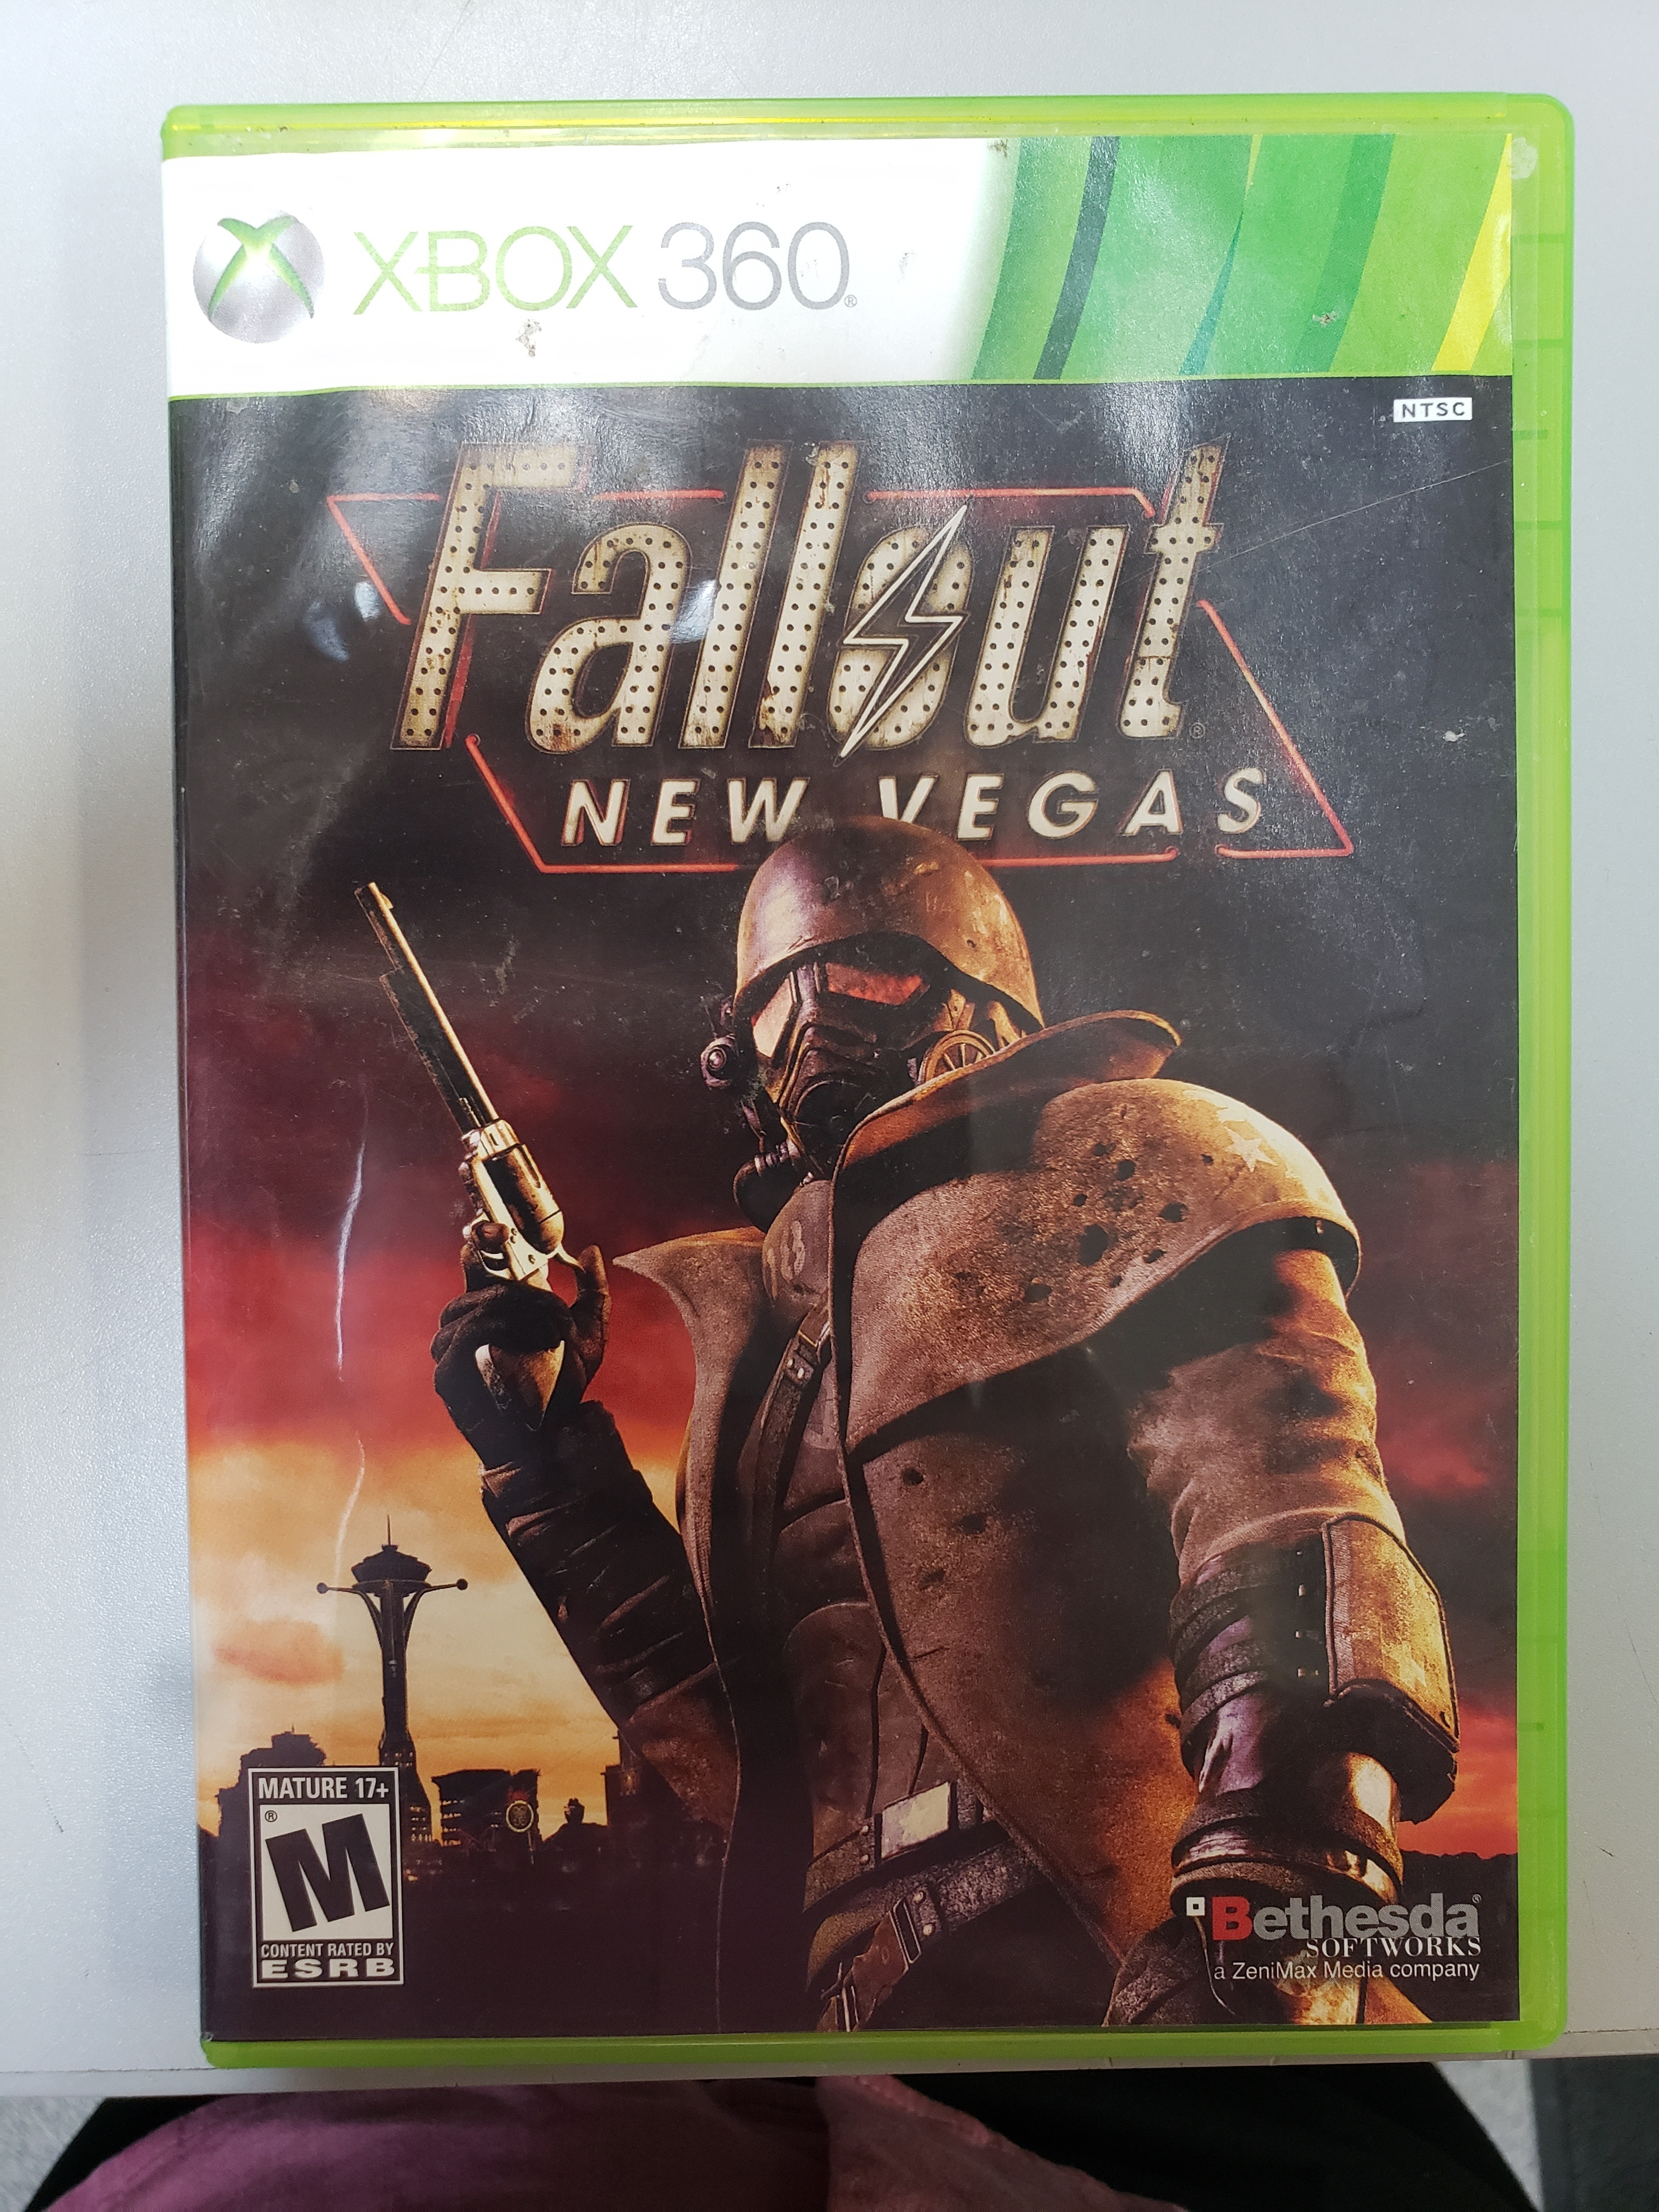 FALLOUT NEW VEGAS - XBOX 360 GAME